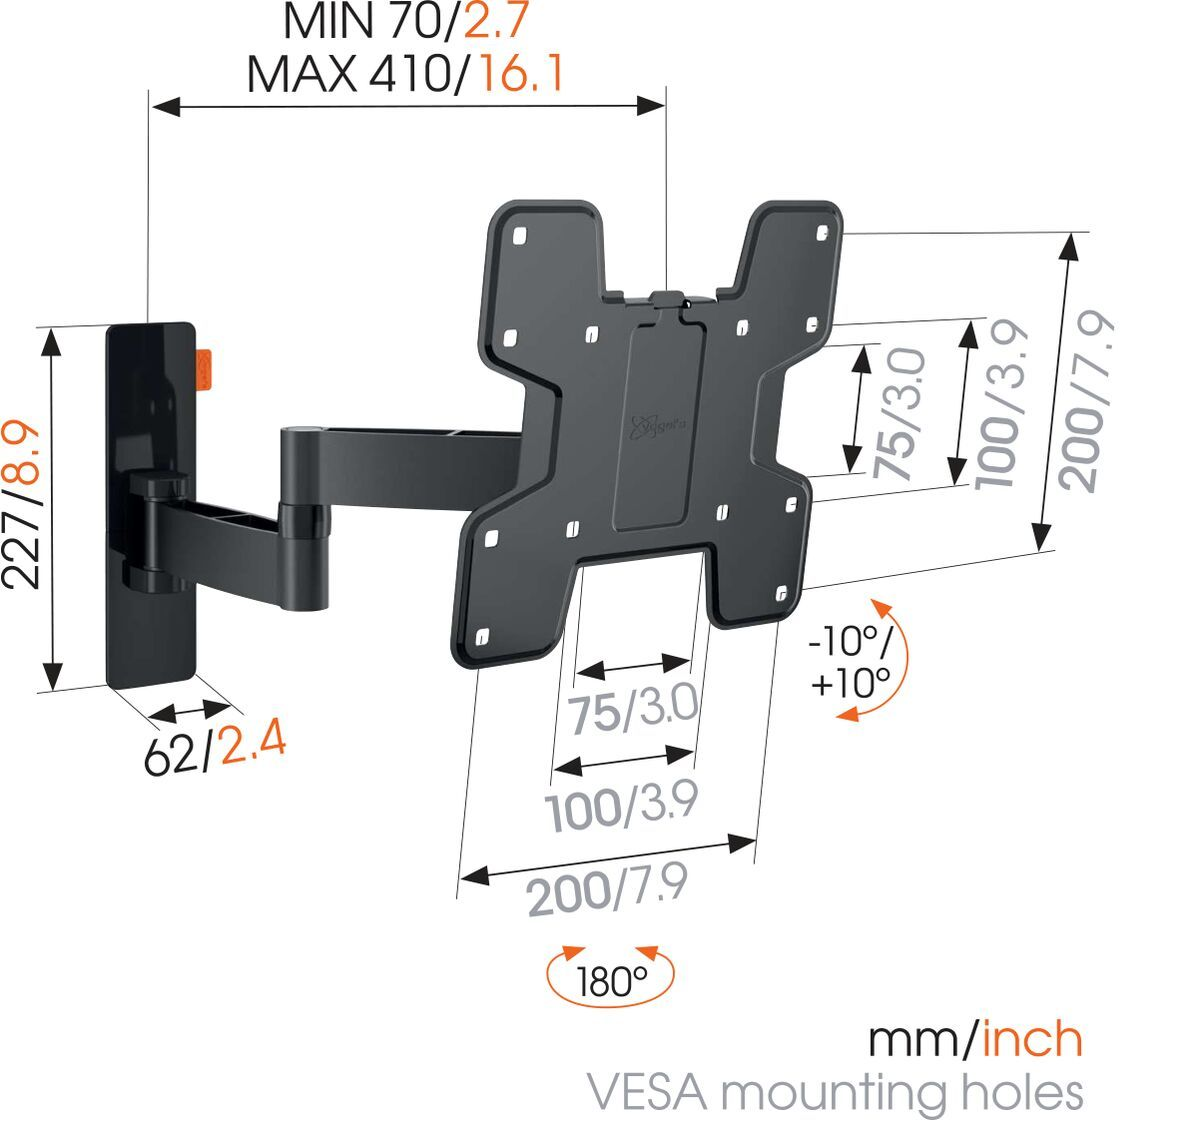 Vogel's WALL 3145 Full-Motion TV Wall Mount (black) - Suitable for Full motion (up to 180°) - Suitable for Tilt -10°/+10° - Suitable for Dimensions